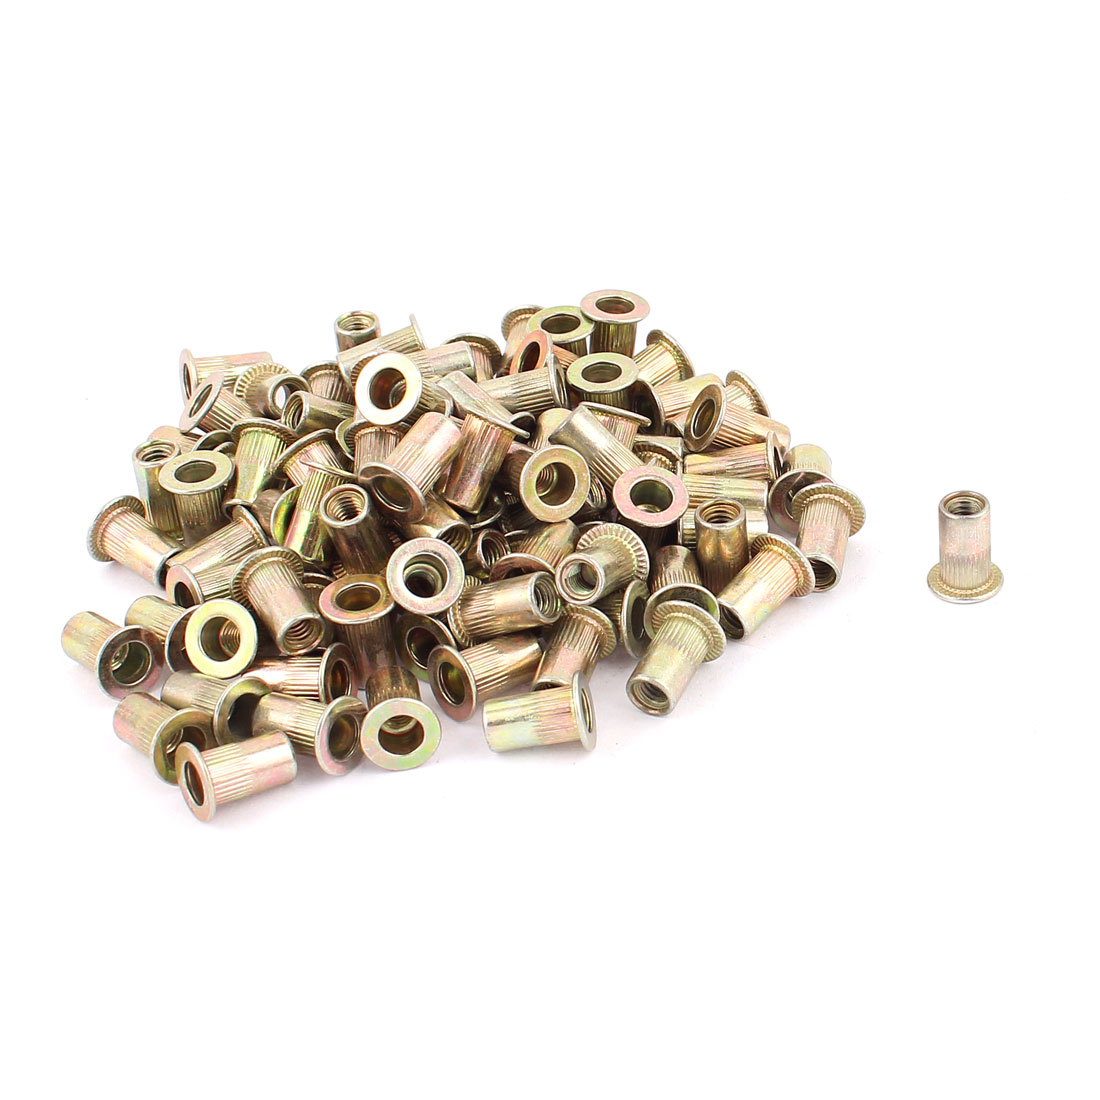 M4 Countersunk Head Open End Female Thread Rivet Nut 100pcs